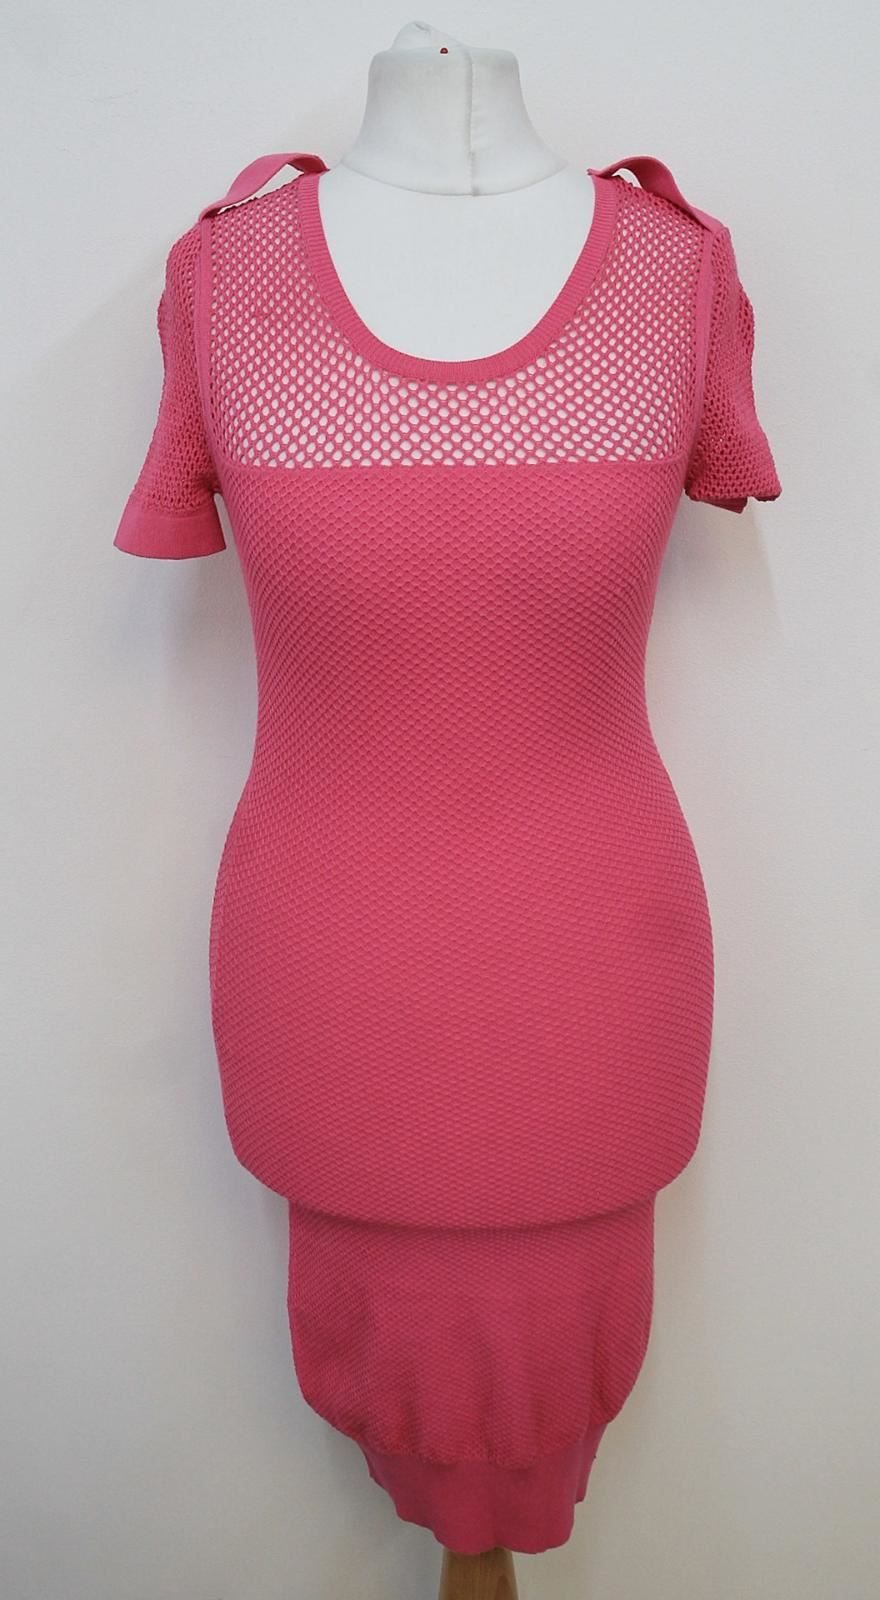 ALEXANDER-MCQUEEN-Ladies-Hot-Pink-Perforated-Short-Sleeved-Bodycon-Dress-XS